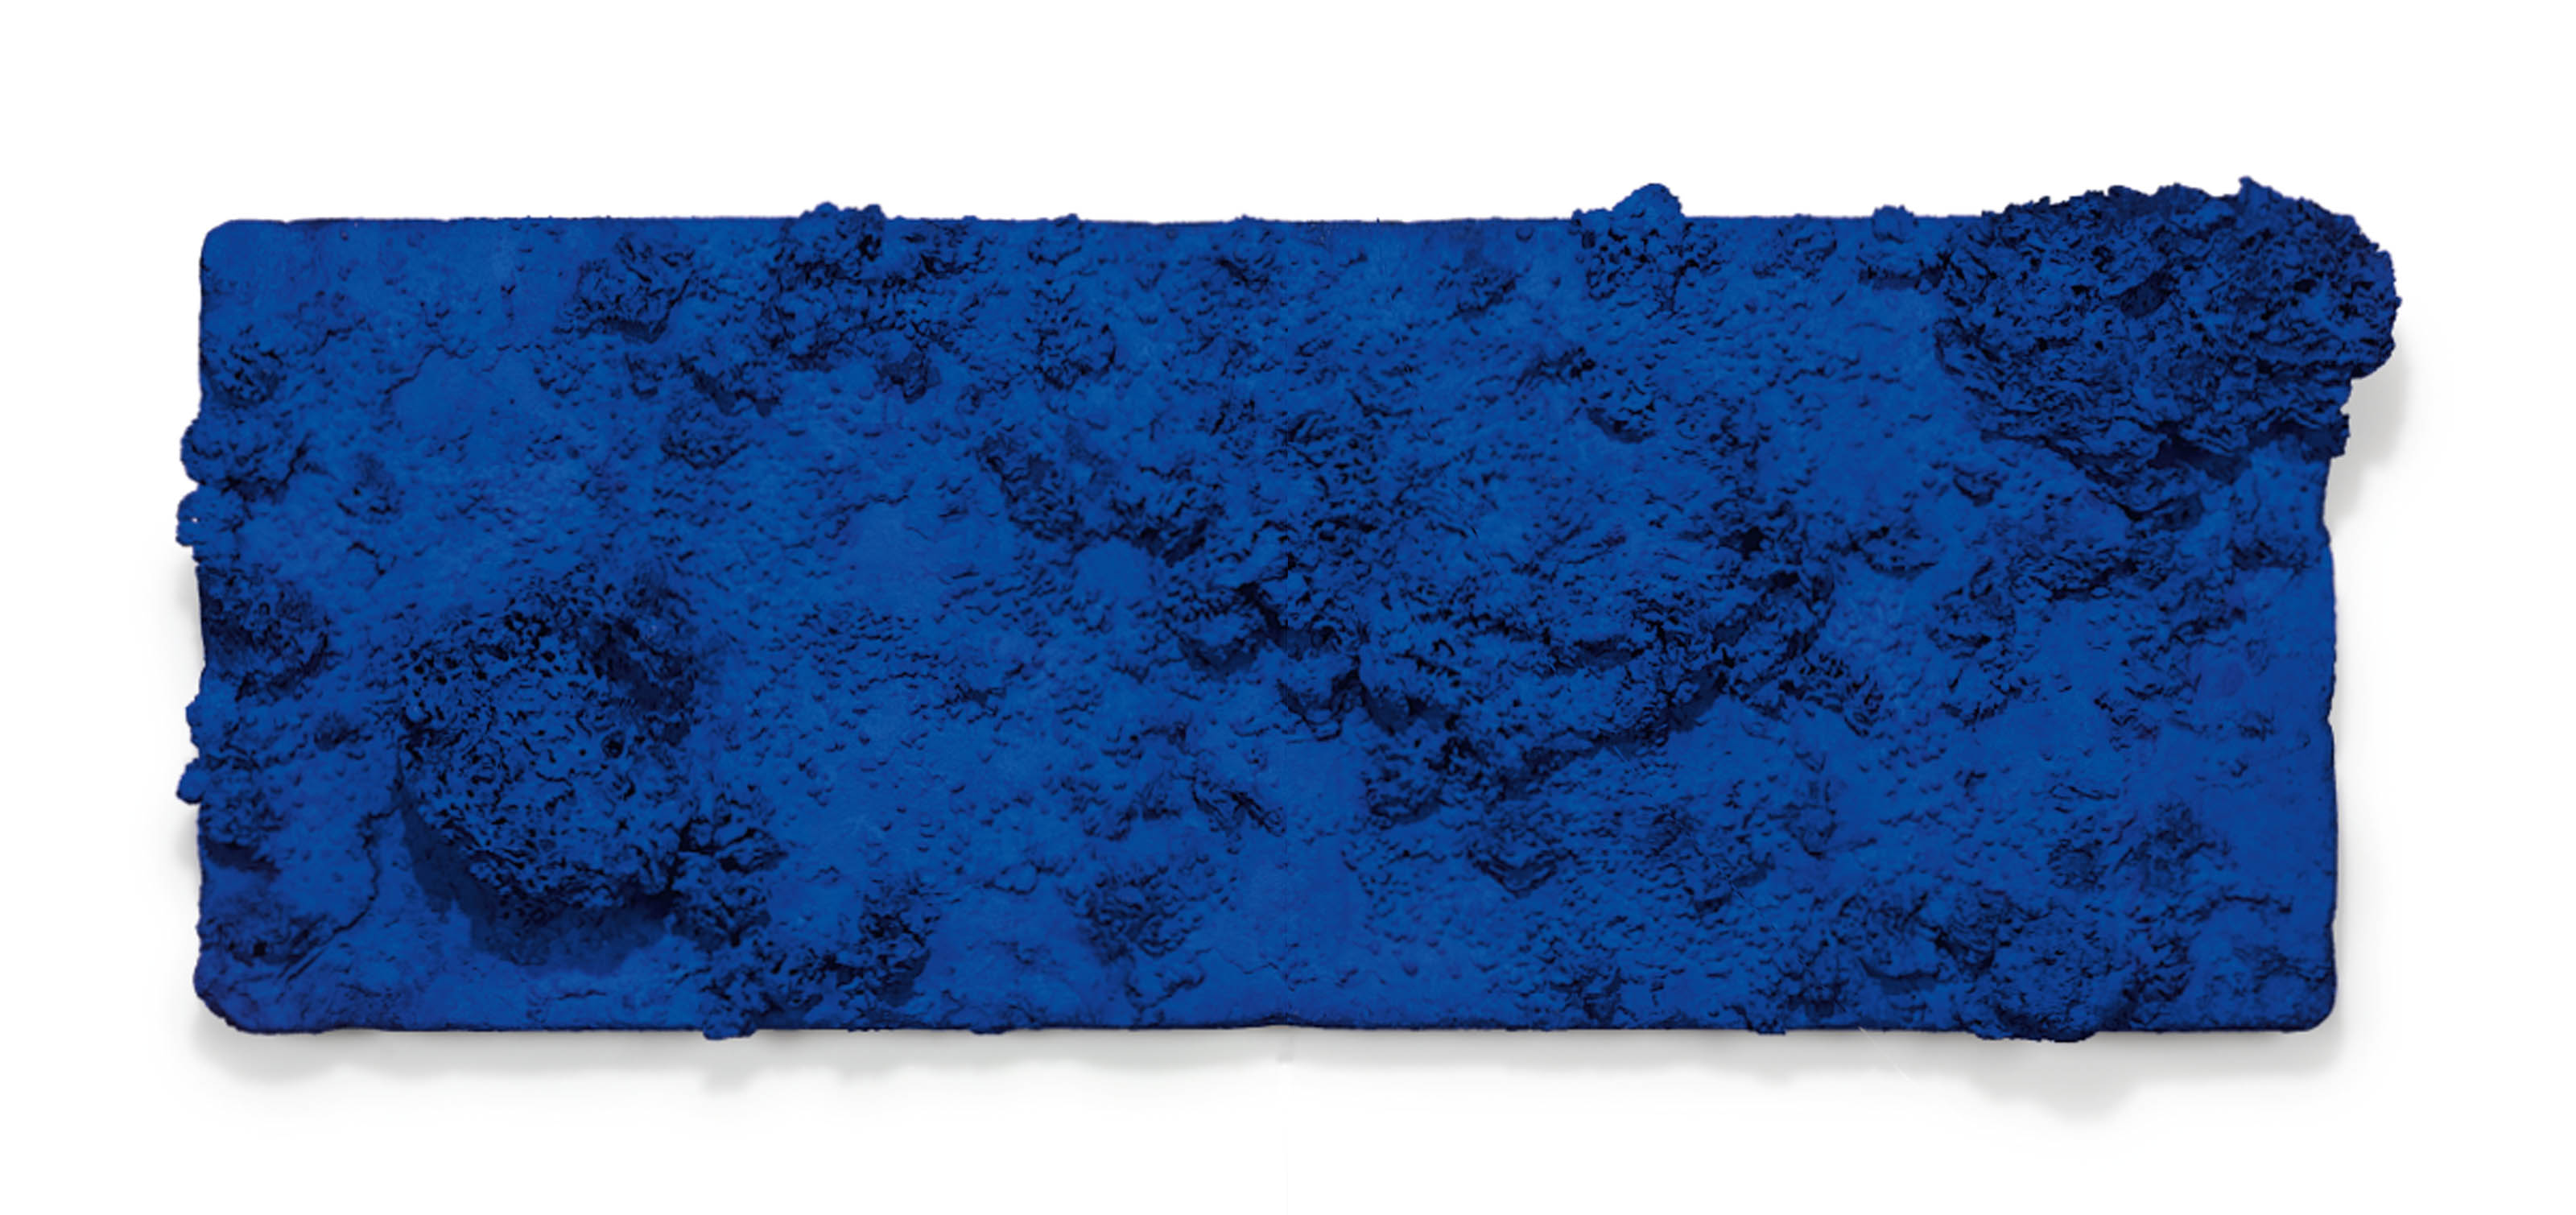 Accord Bleu (Sponge Relief)